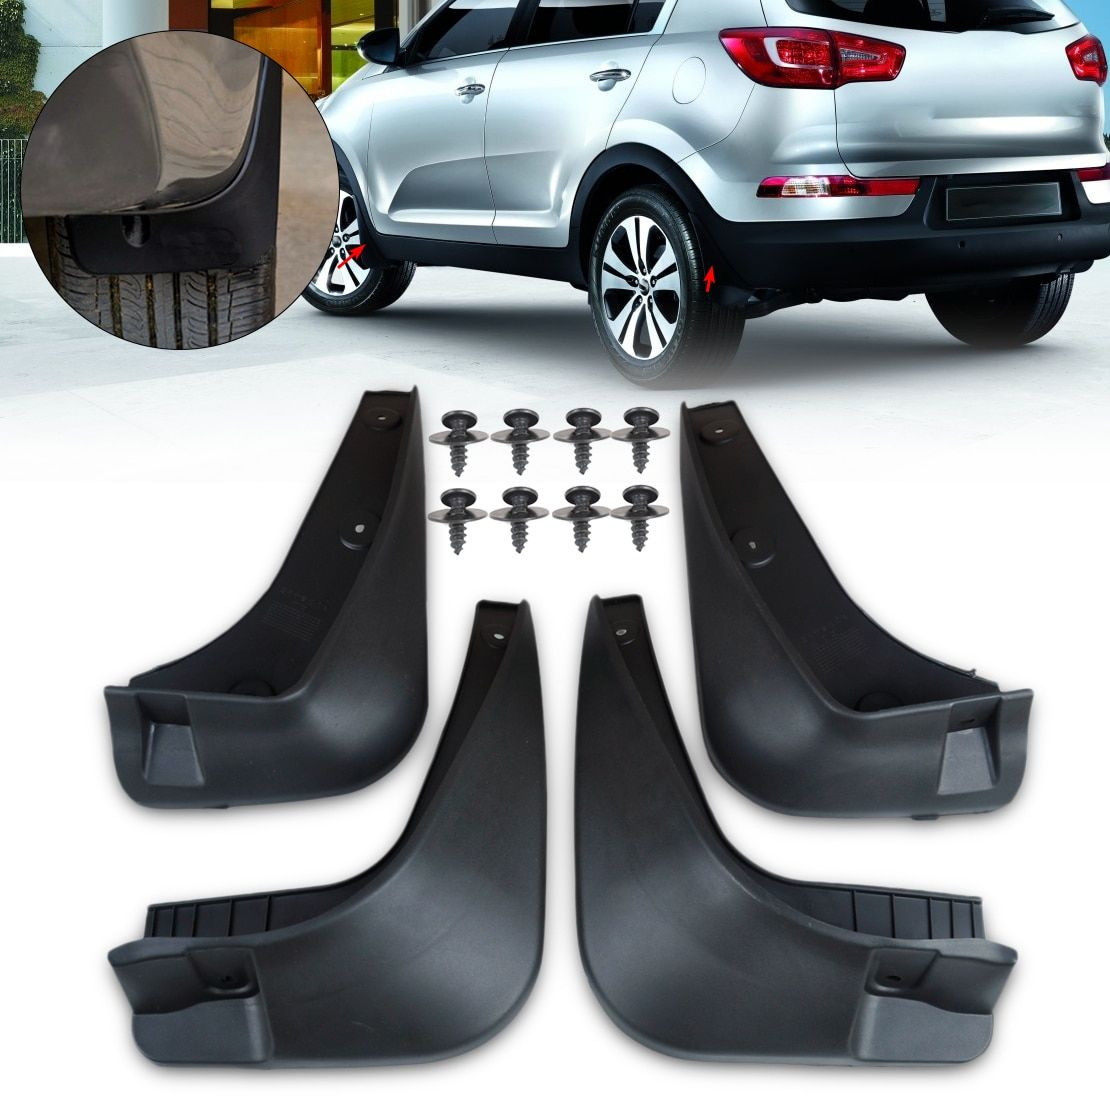 CITALL Rubber Mud Flaps Flap Splash Guards Mudguard Mudflaps Fenders Protector For Kia Sportage R 2010 2011 2012 2013 2014